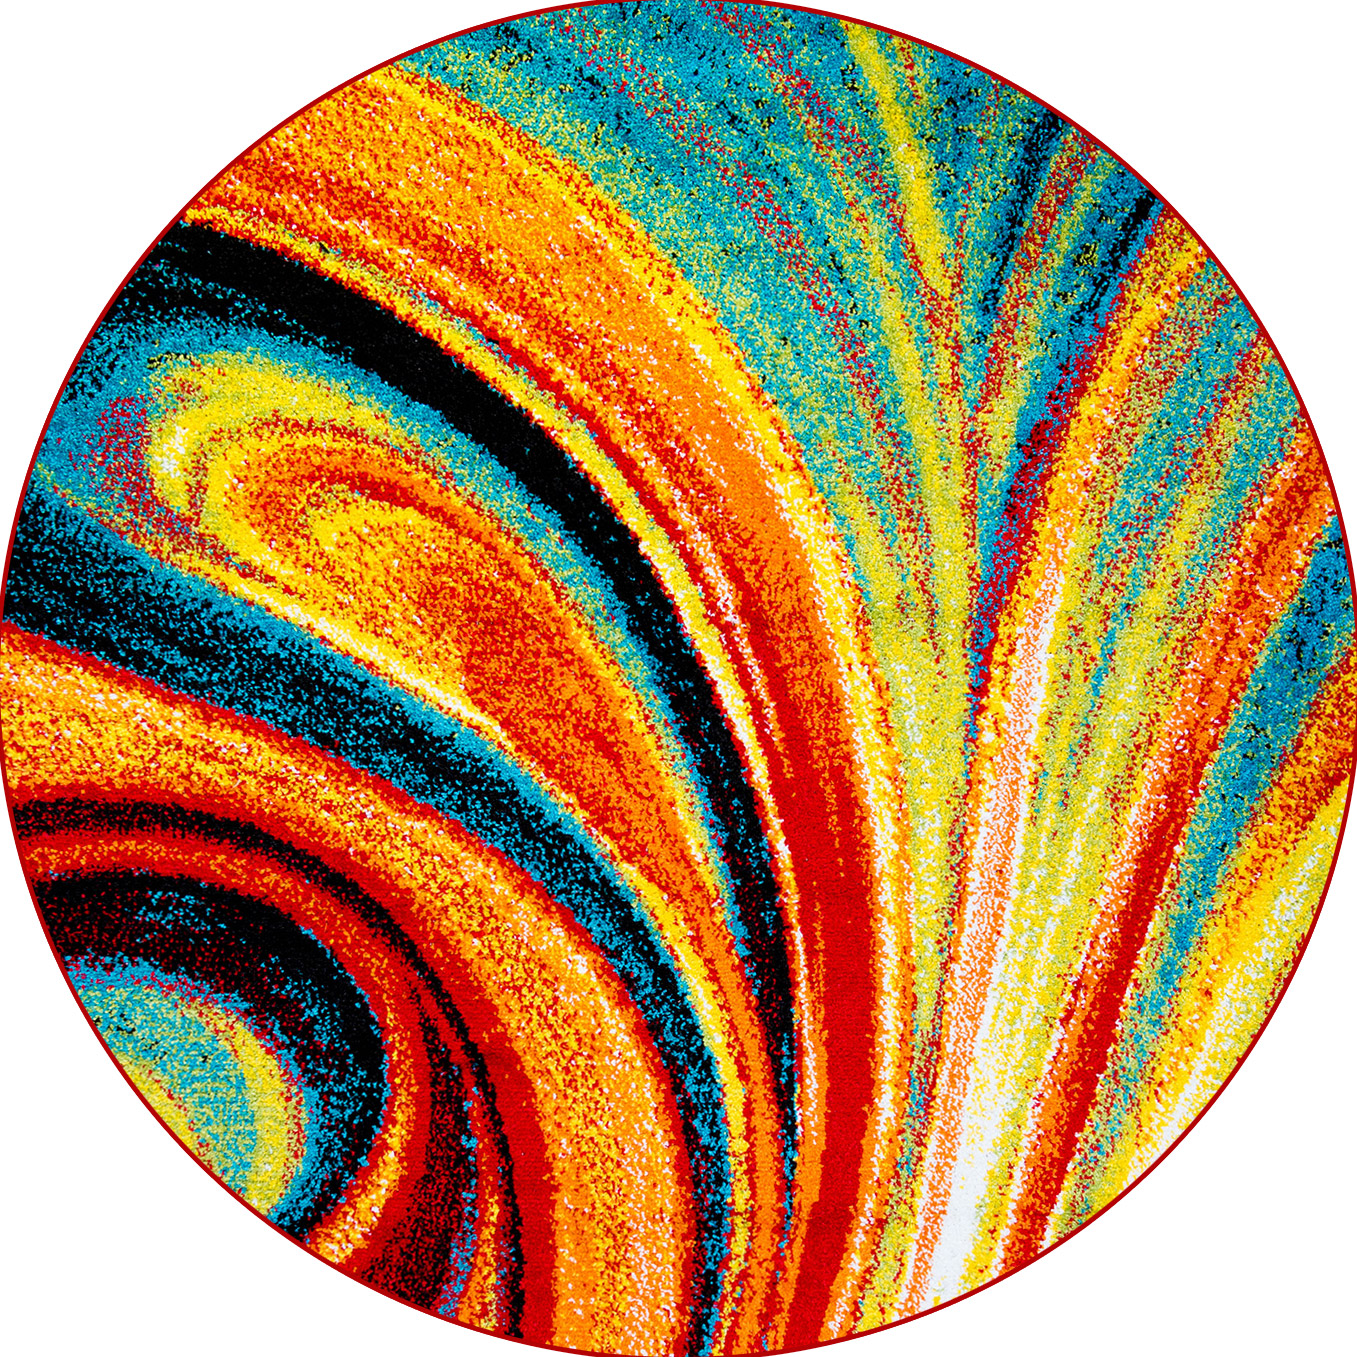 Multi Color Swirls Round Area Rug 8x8 Abstract Carpet